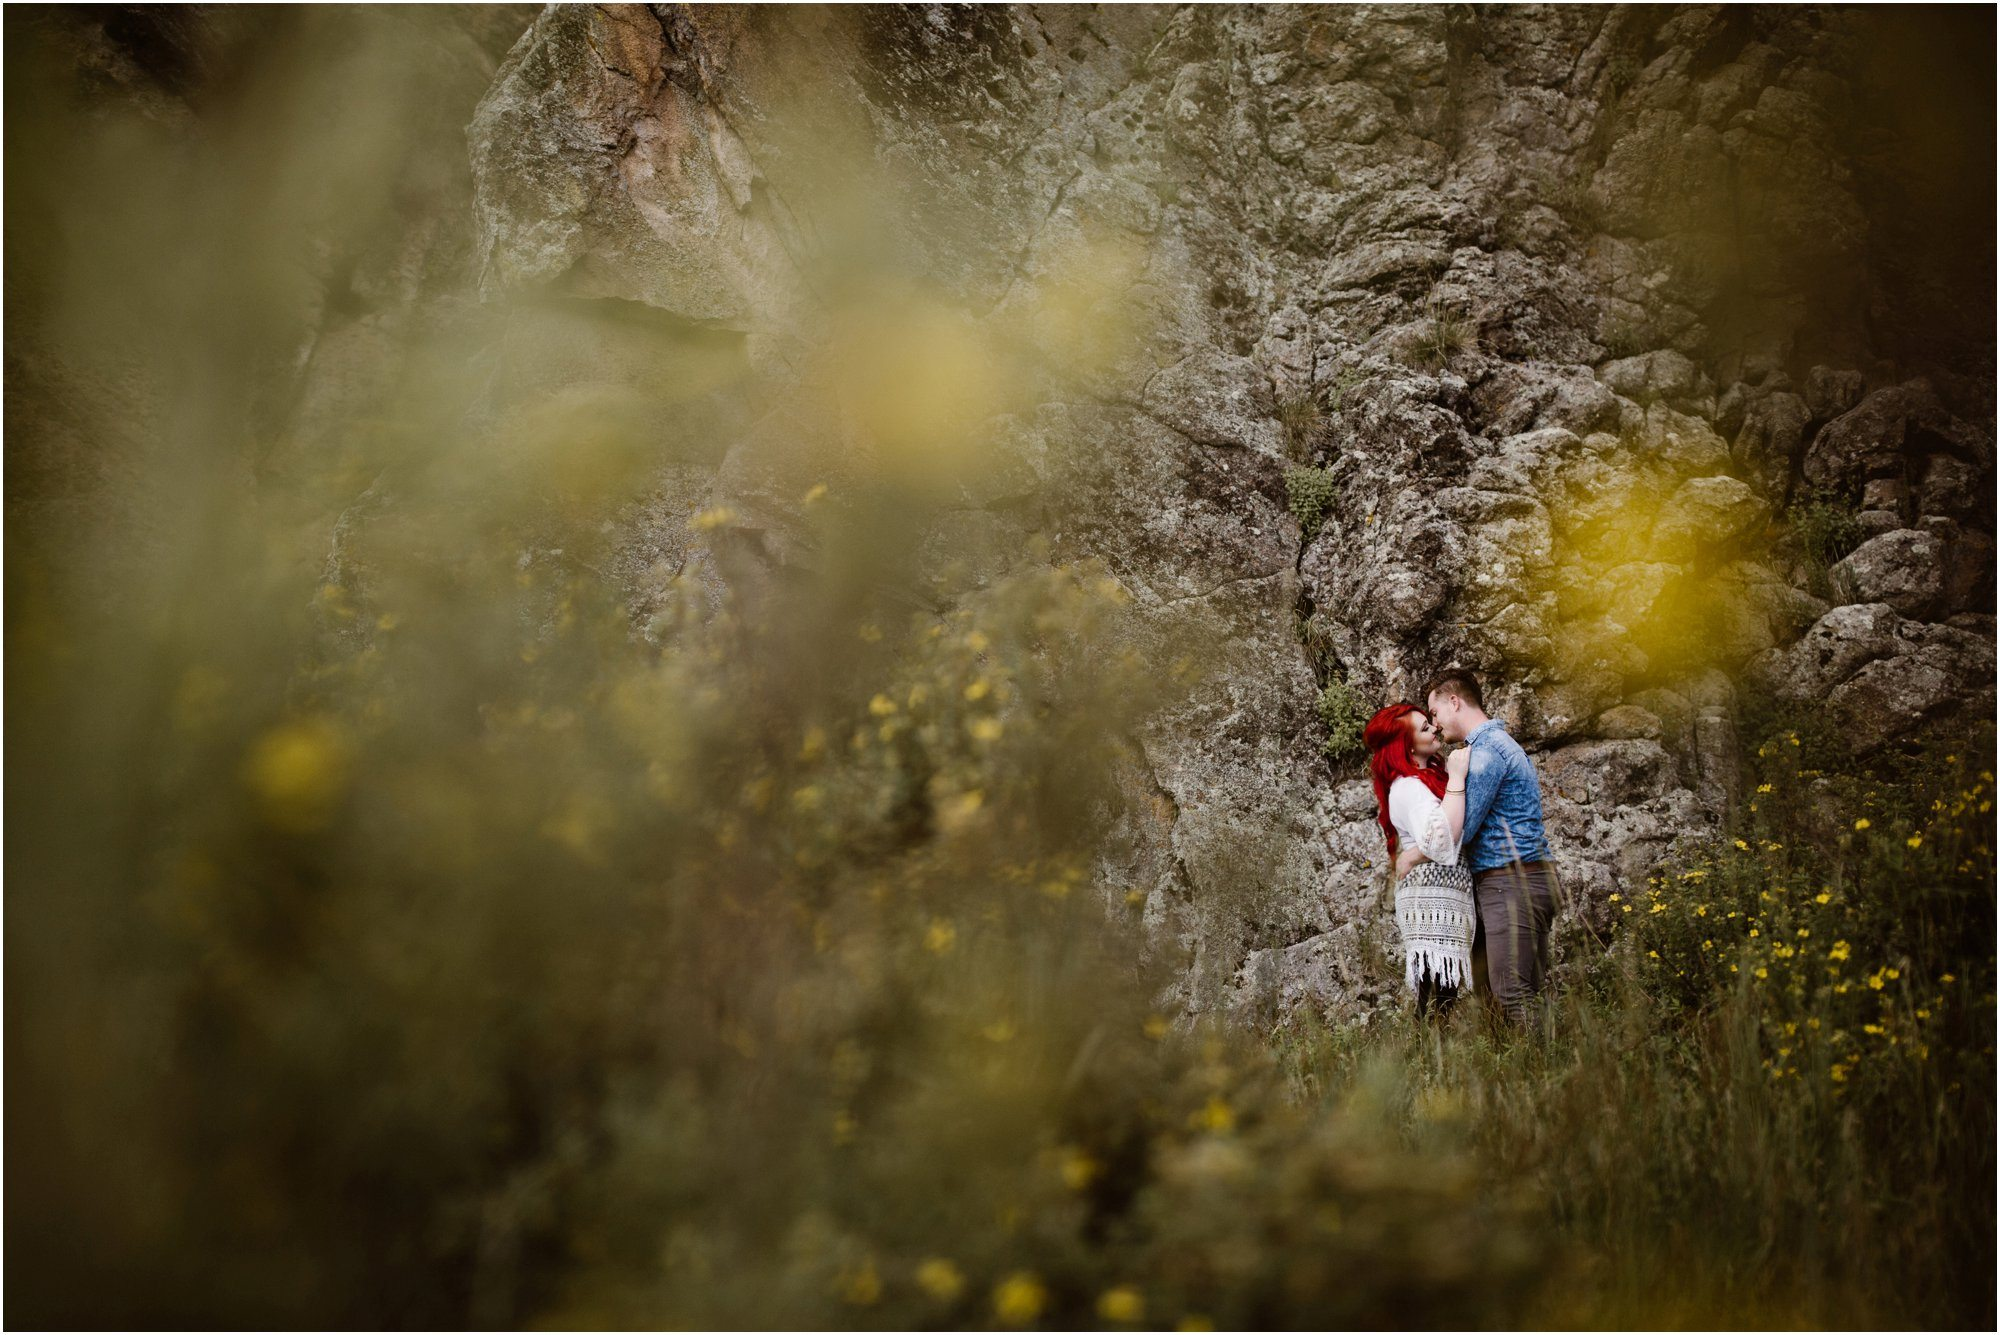 020Blue Rose Photography_ Albuquerque, Santa Fe, New Mexico wedding photographer_ engagement pictures